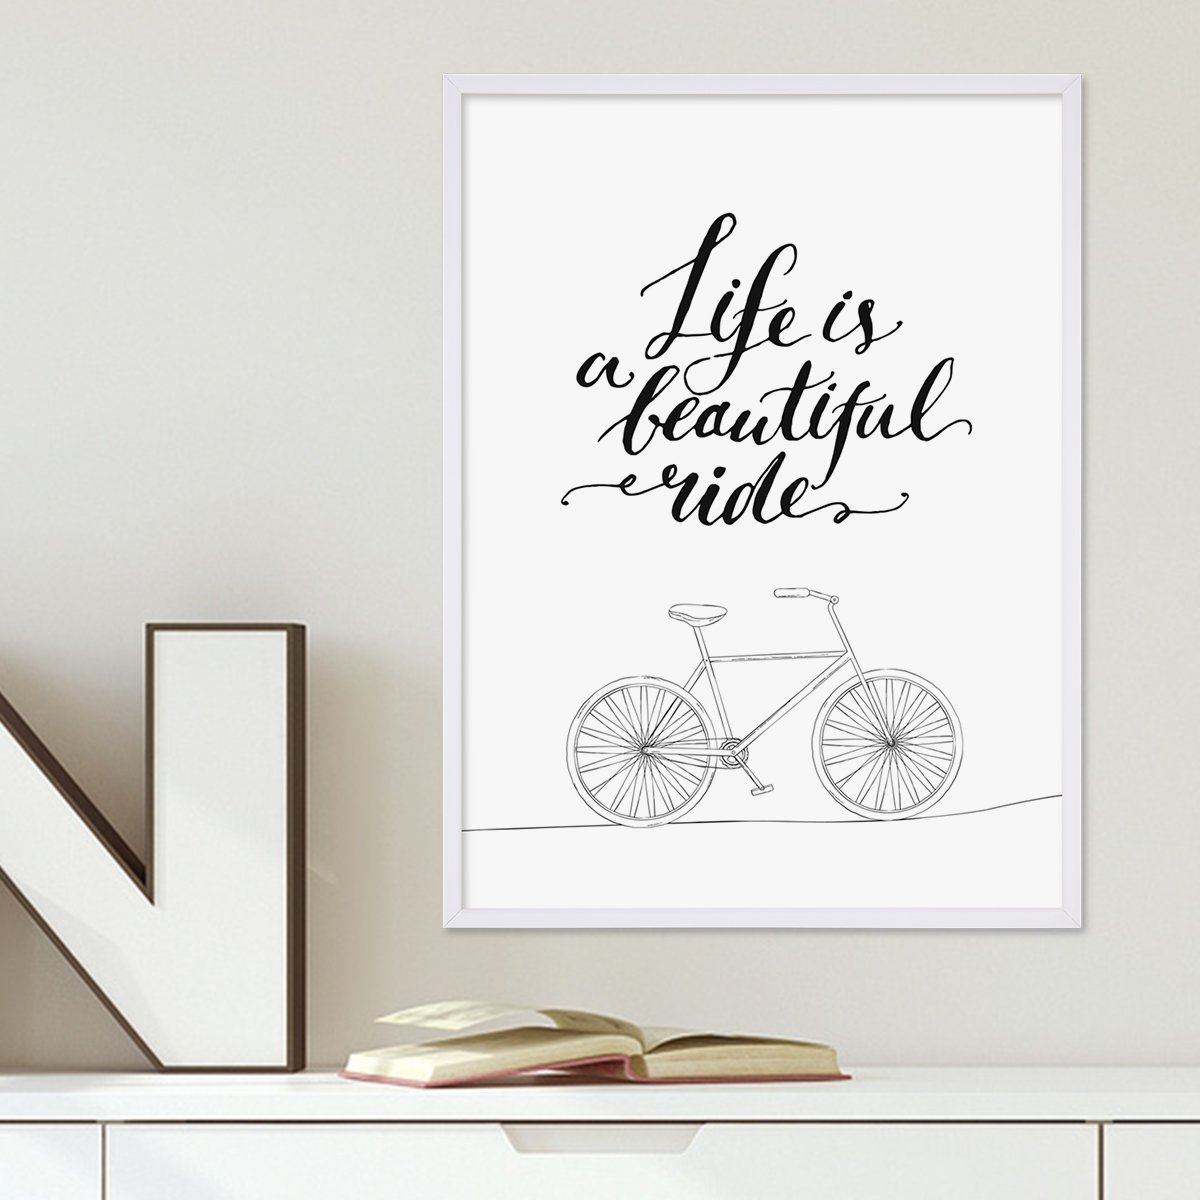 poster mit bilderrahmen weiss 39 beautiful ride 39 30x40 cm schwarz weiss motiv typographie spruch. Black Bedroom Furniture Sets. Home Design Ideas